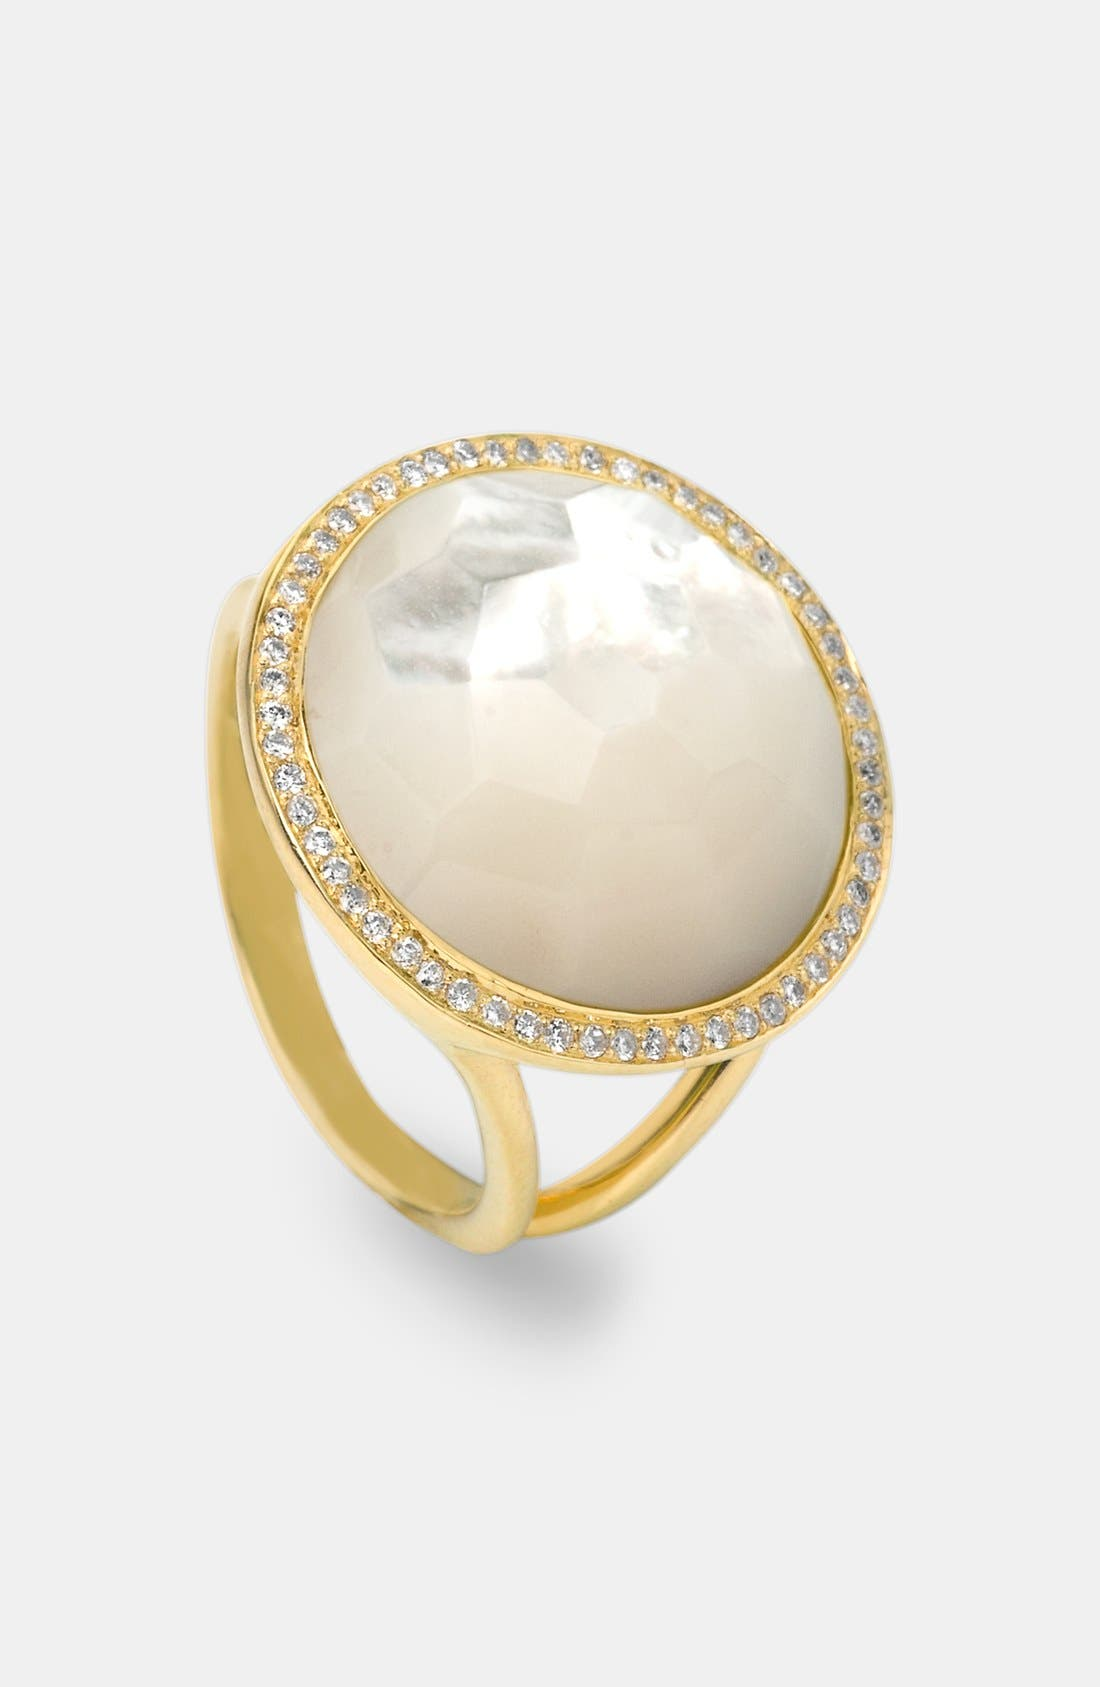 Main Image - Ippolita 'Rock Candy - Lollipop' 18k Gold Ring